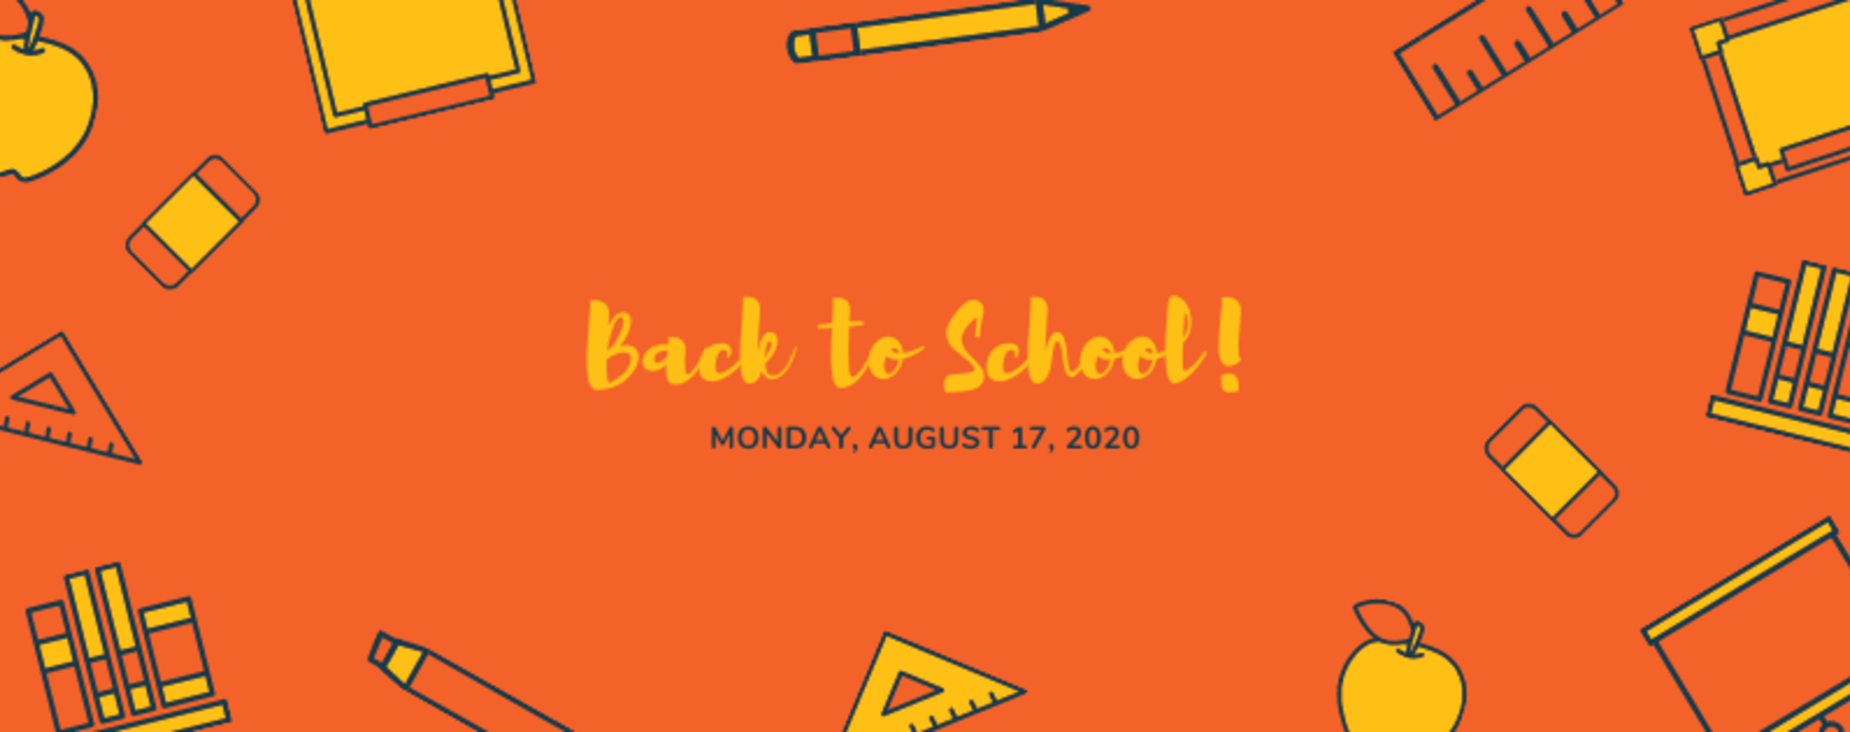 Back to School Monday, August 17, 2020